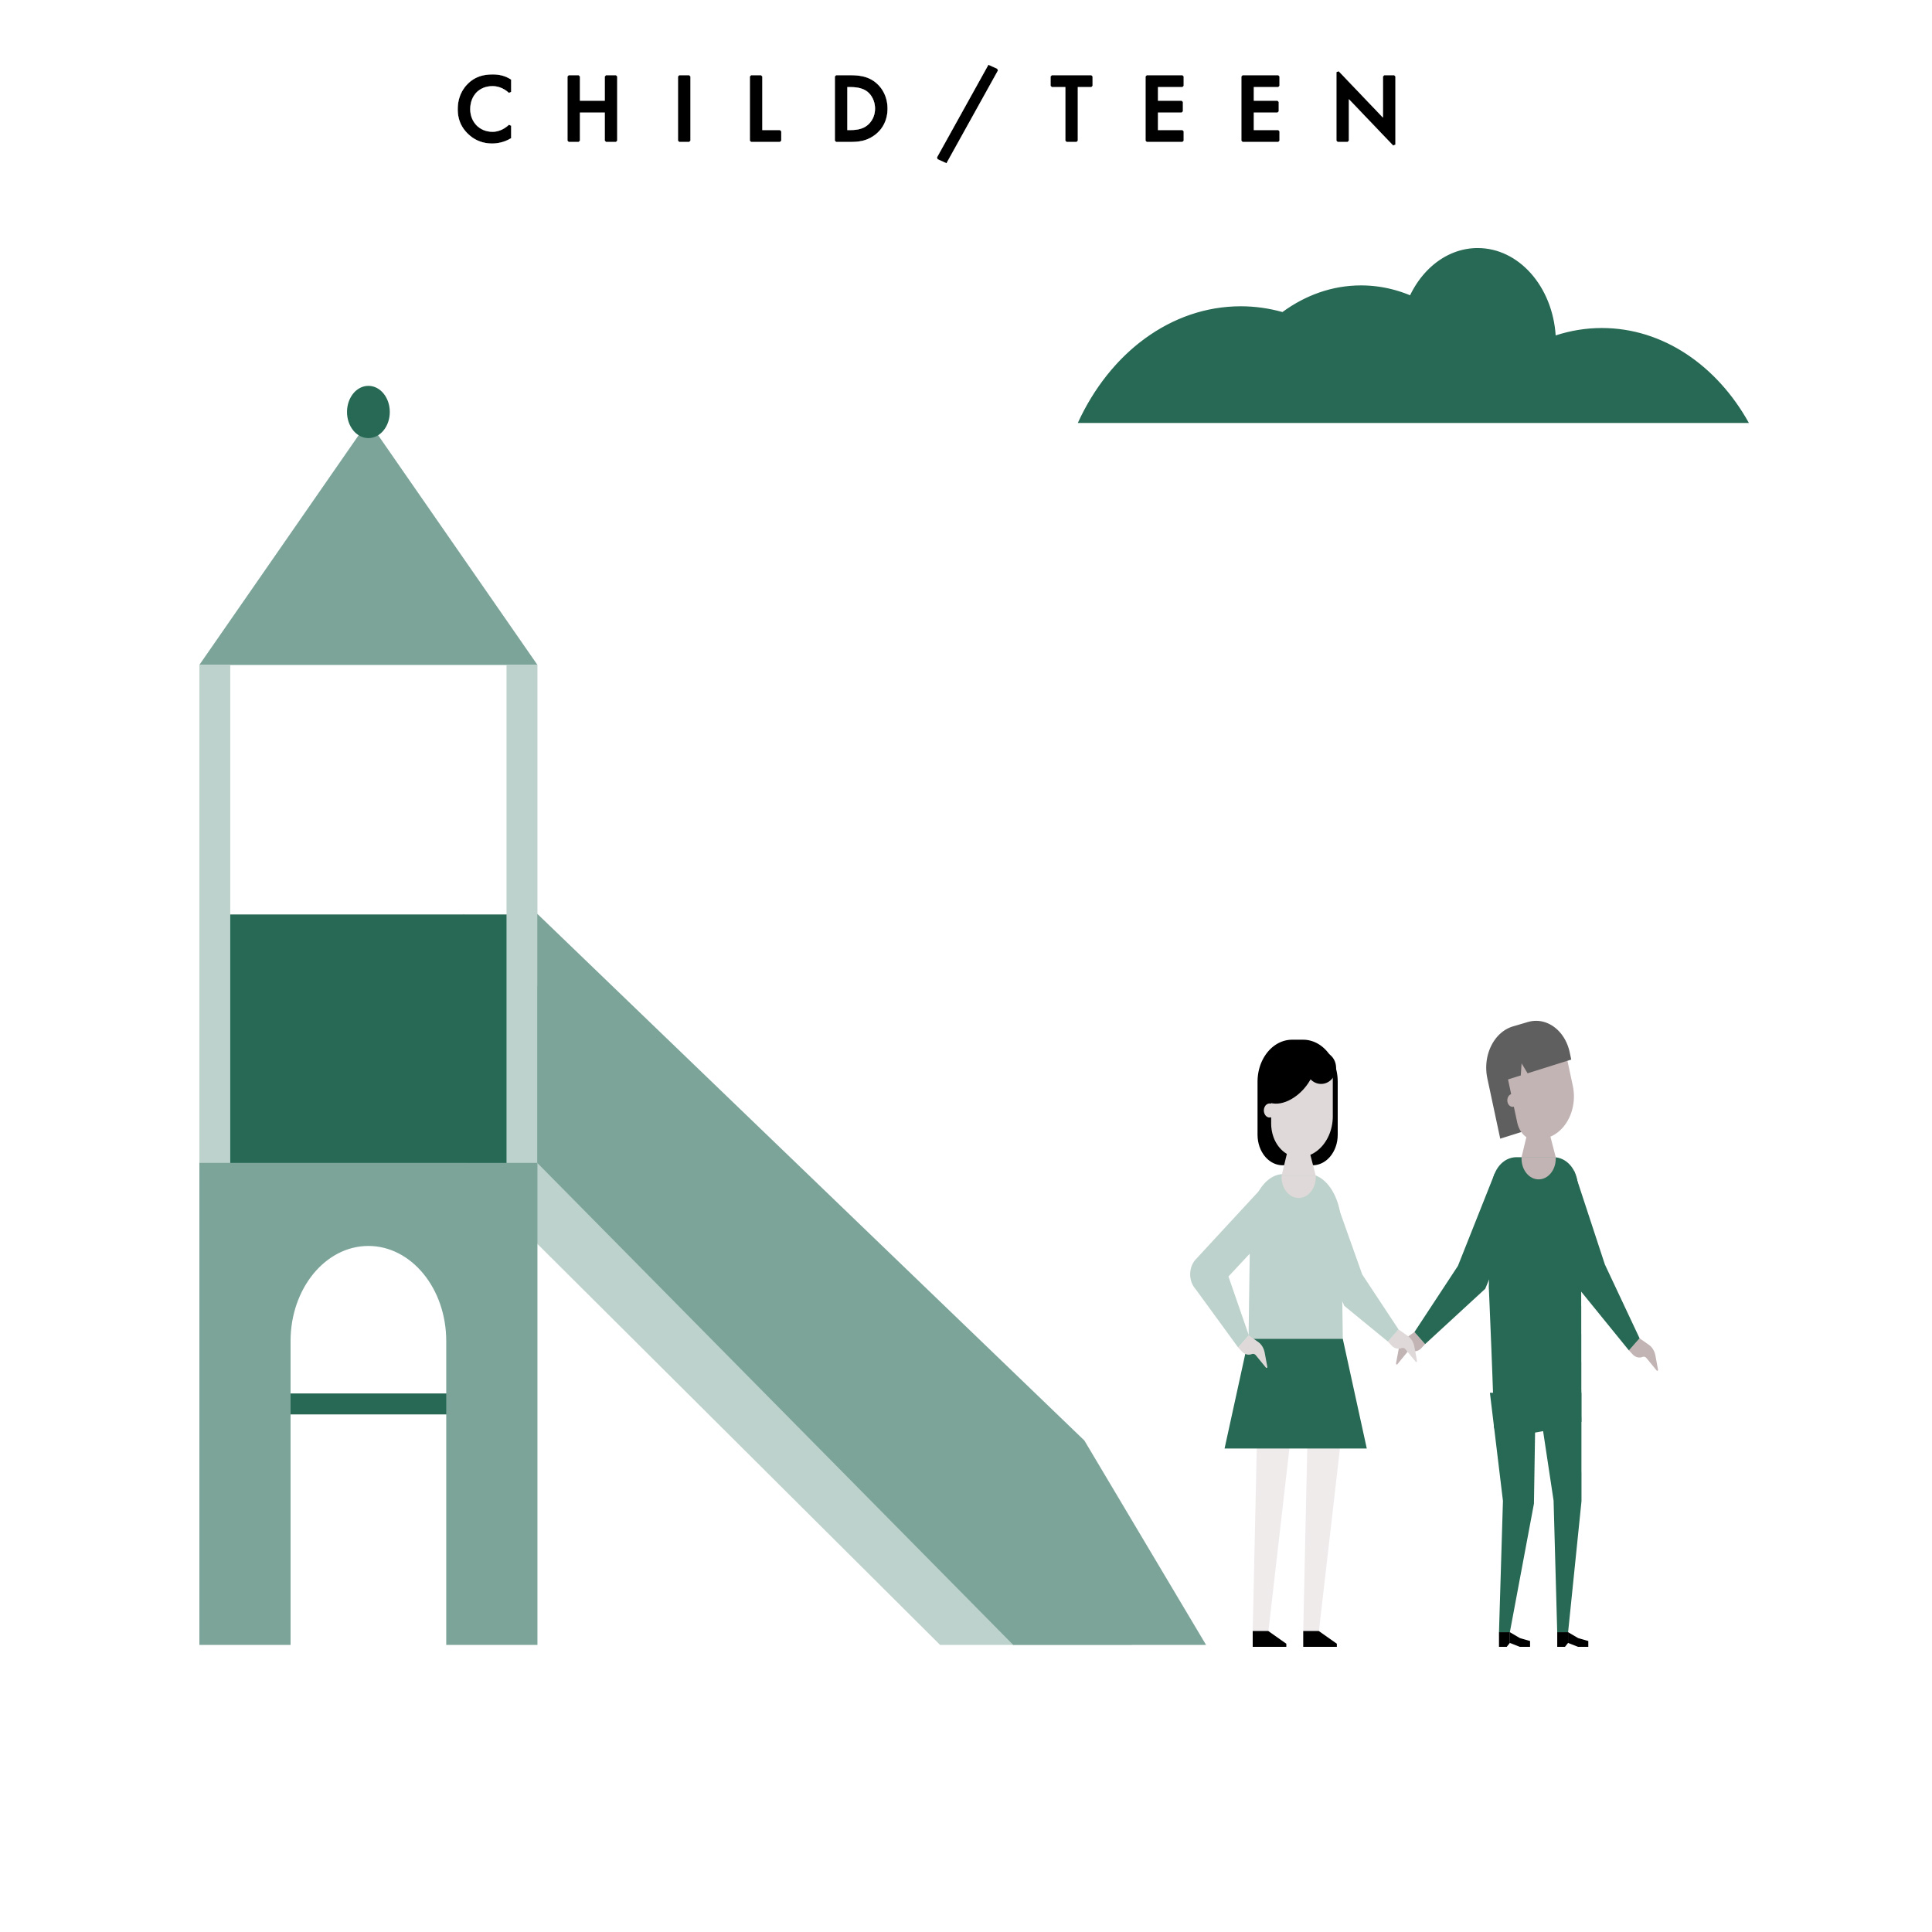 CHILD/Teen COUNSELING - General child & teen counselingTrauma/moodPeer traumaDivorce & parental separationAlternative livingLGBTQIA2+Behavioral concerns